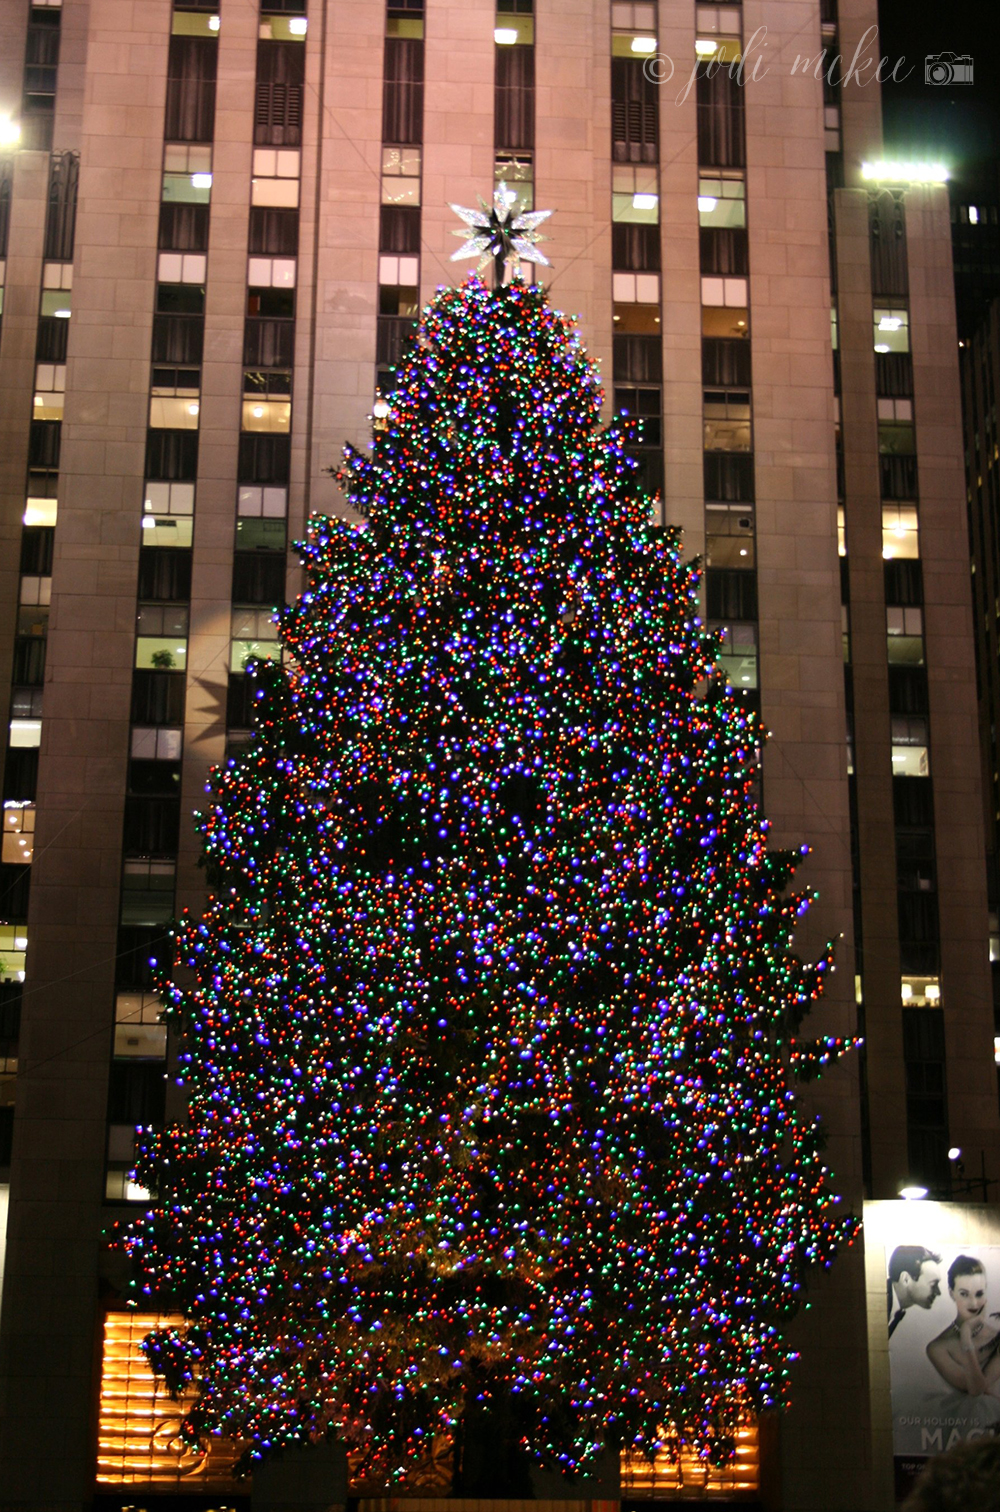 rockefeller center christmas tree, new york city